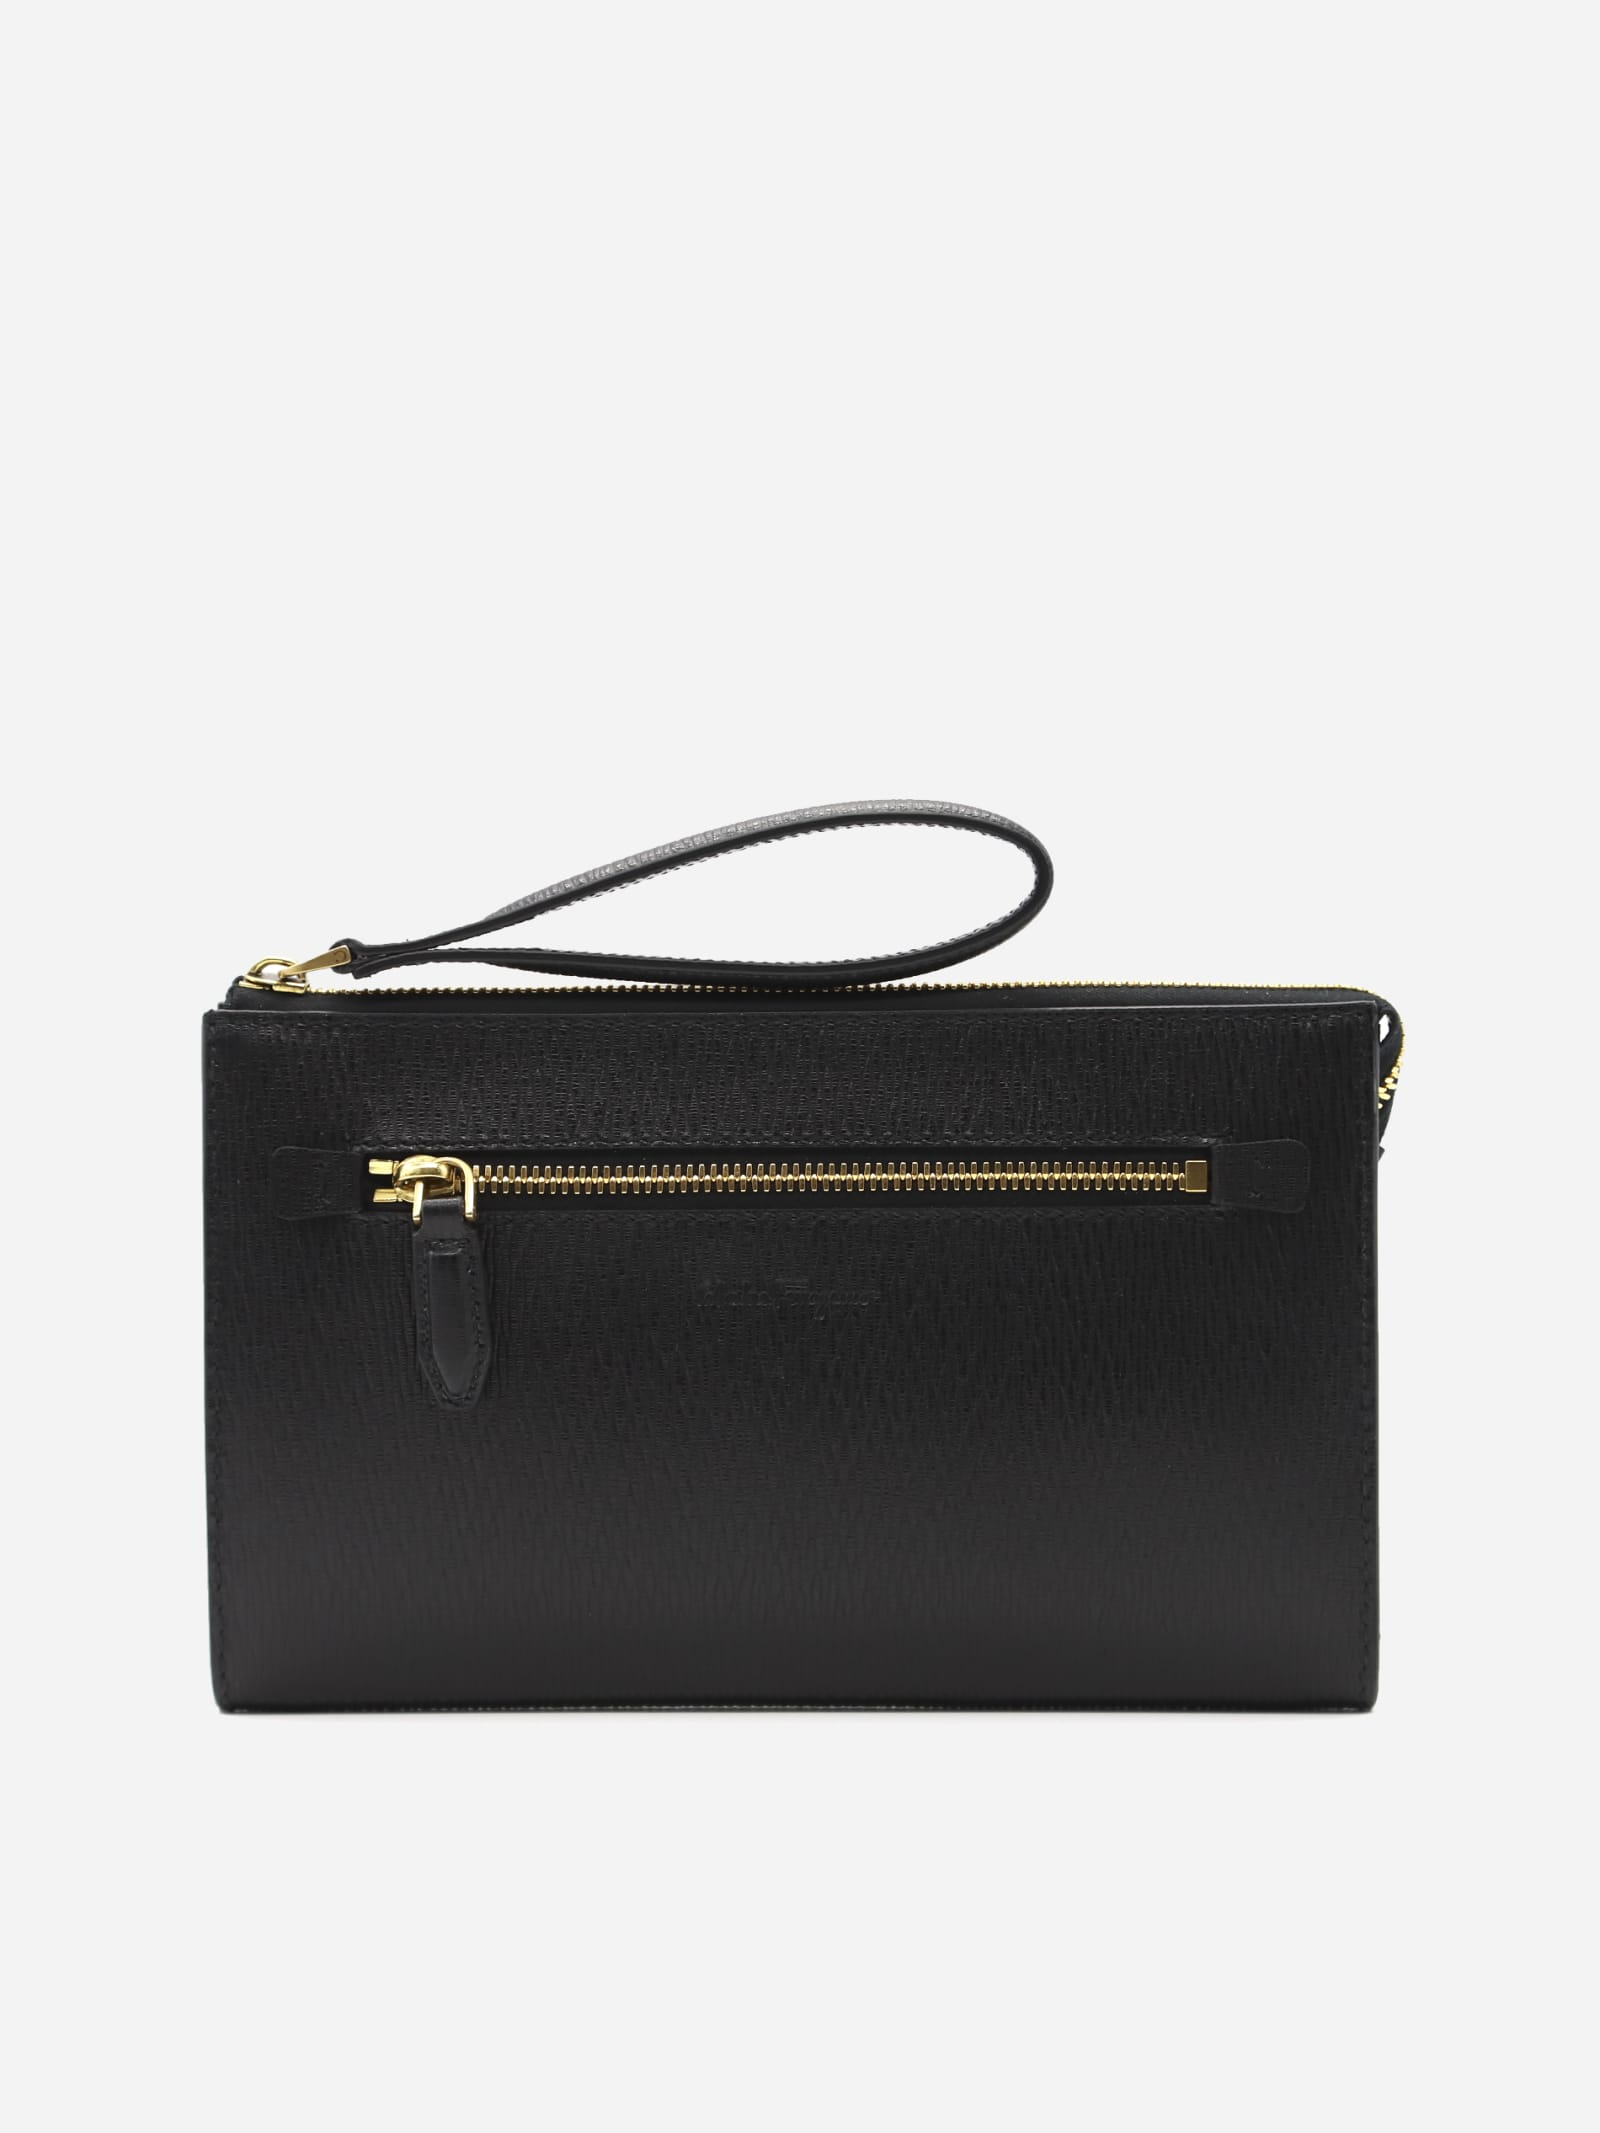 SALVATORE FERRAGAMO DOCUMENT HOLDER IN HAMMERED LEATHER WITH EMBOSSED LOGO